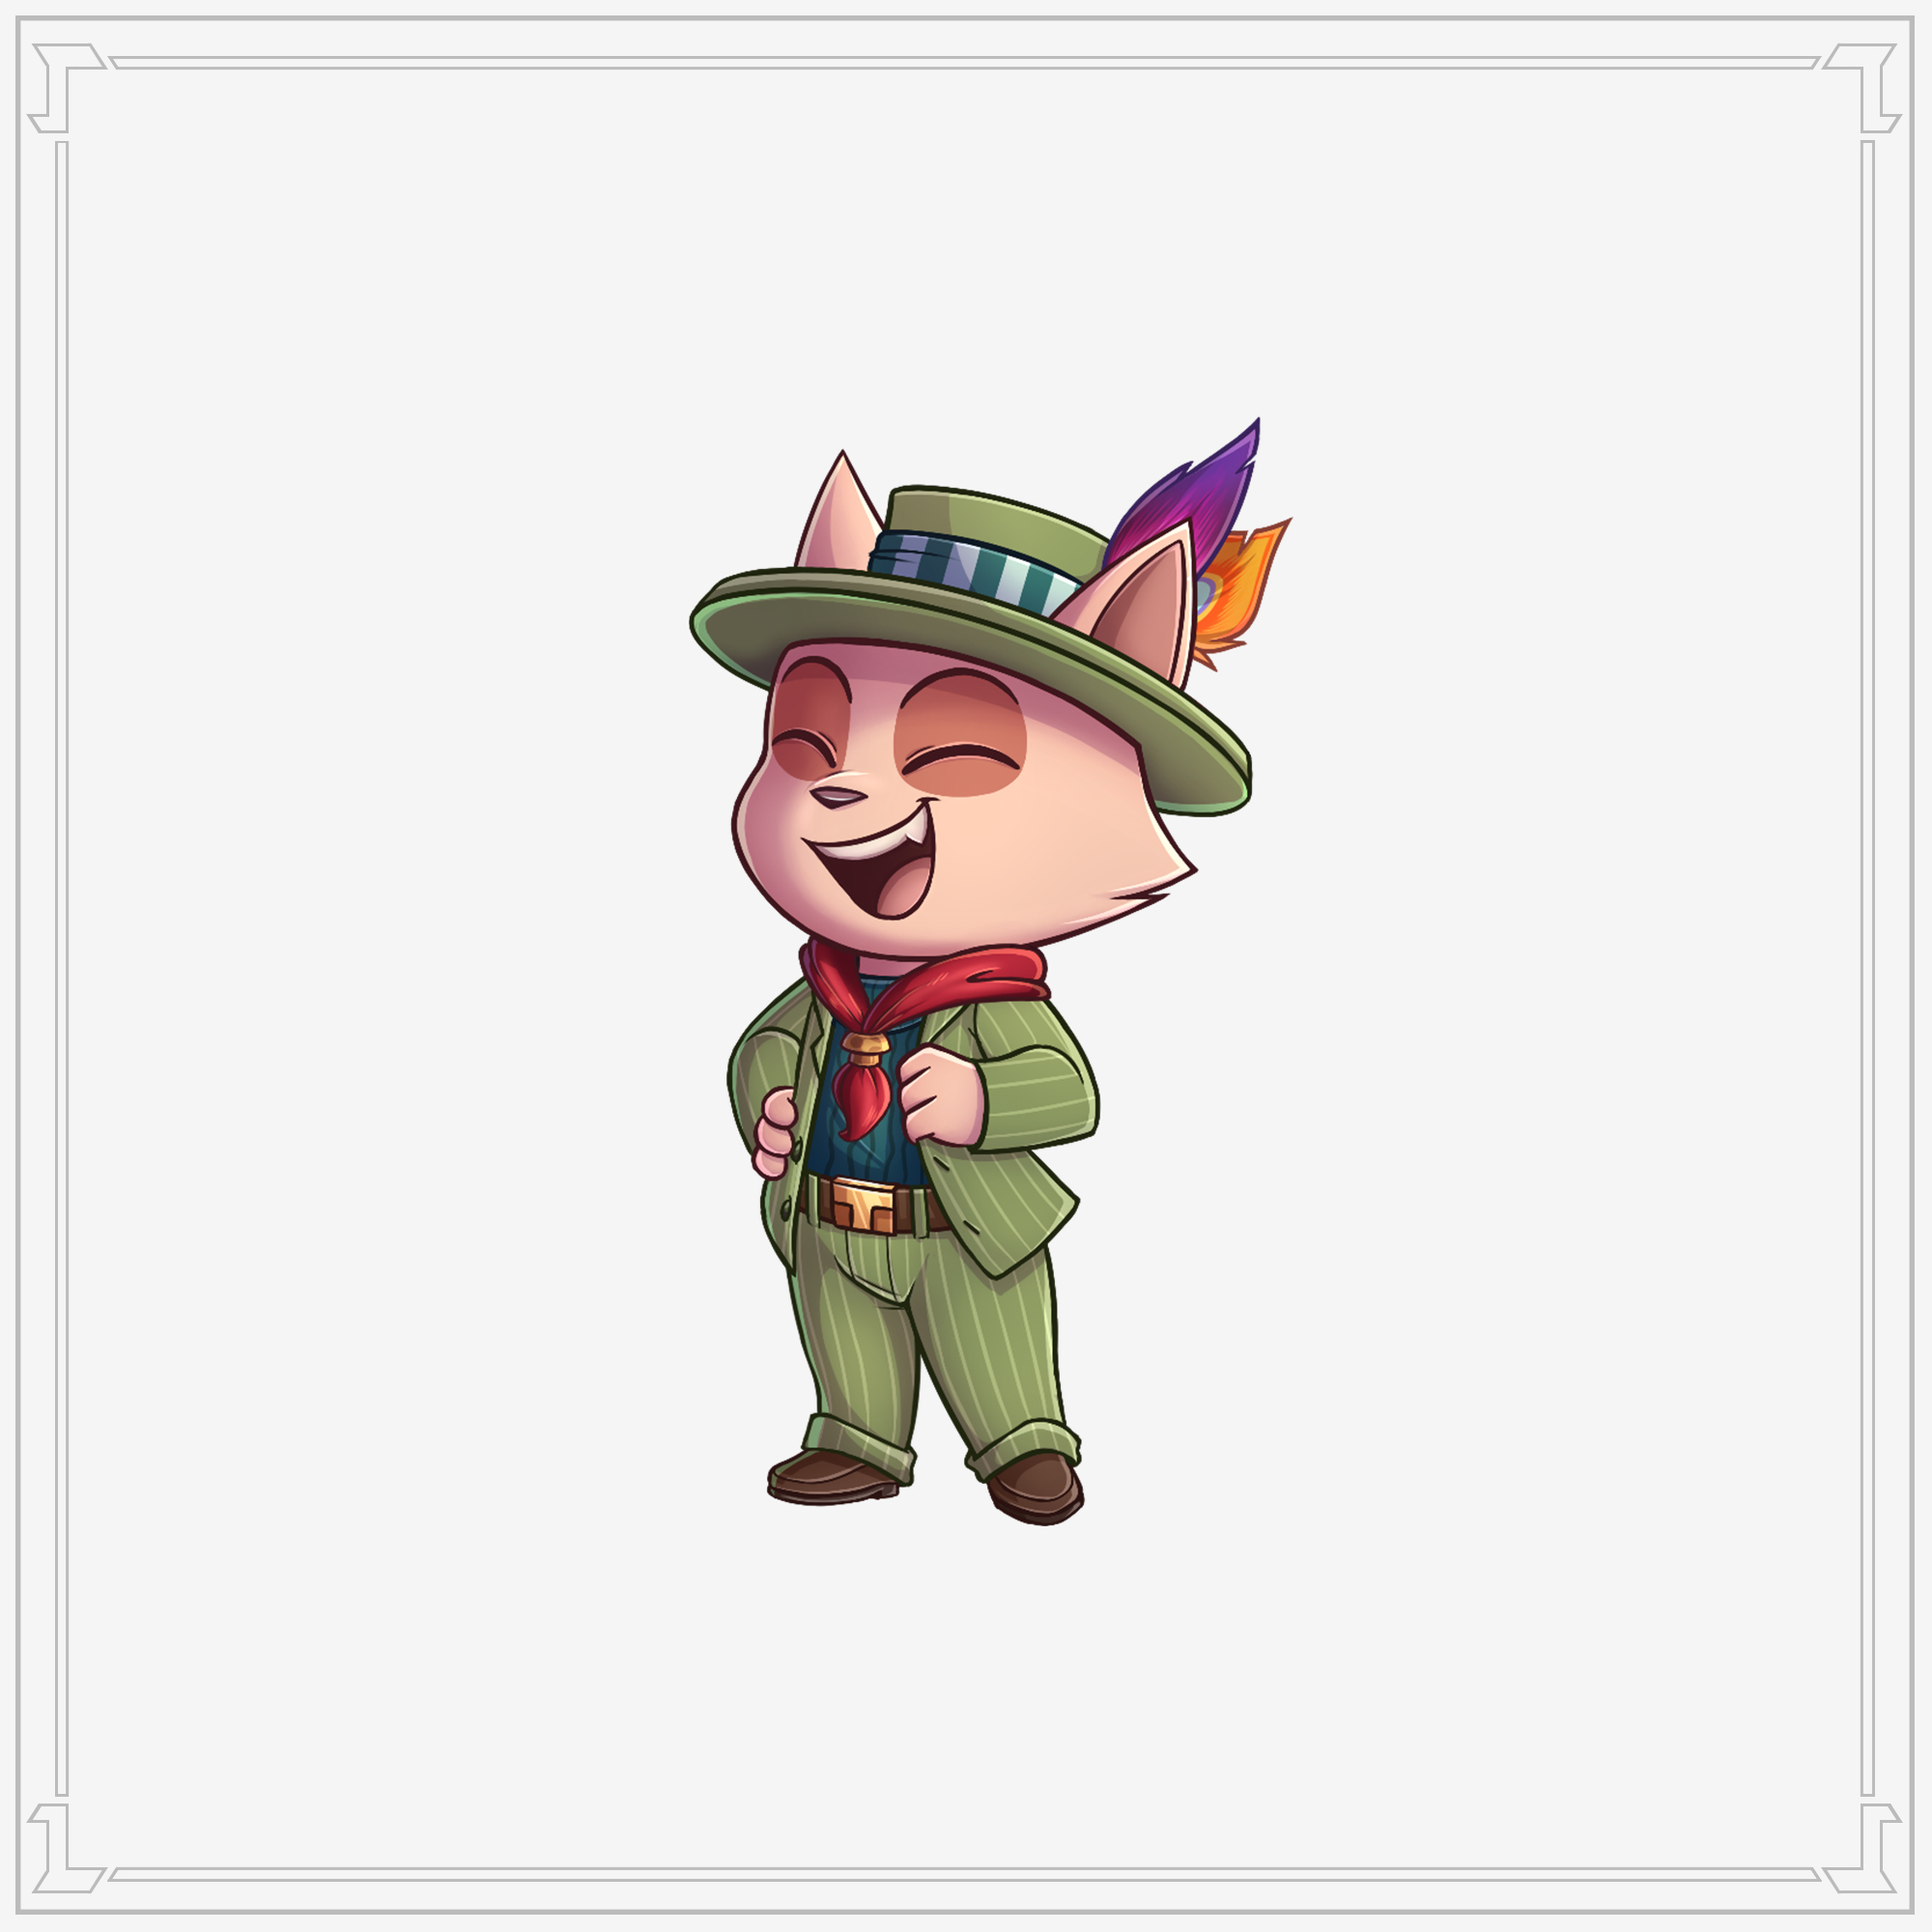 Teemo by Recon Scout Teemo